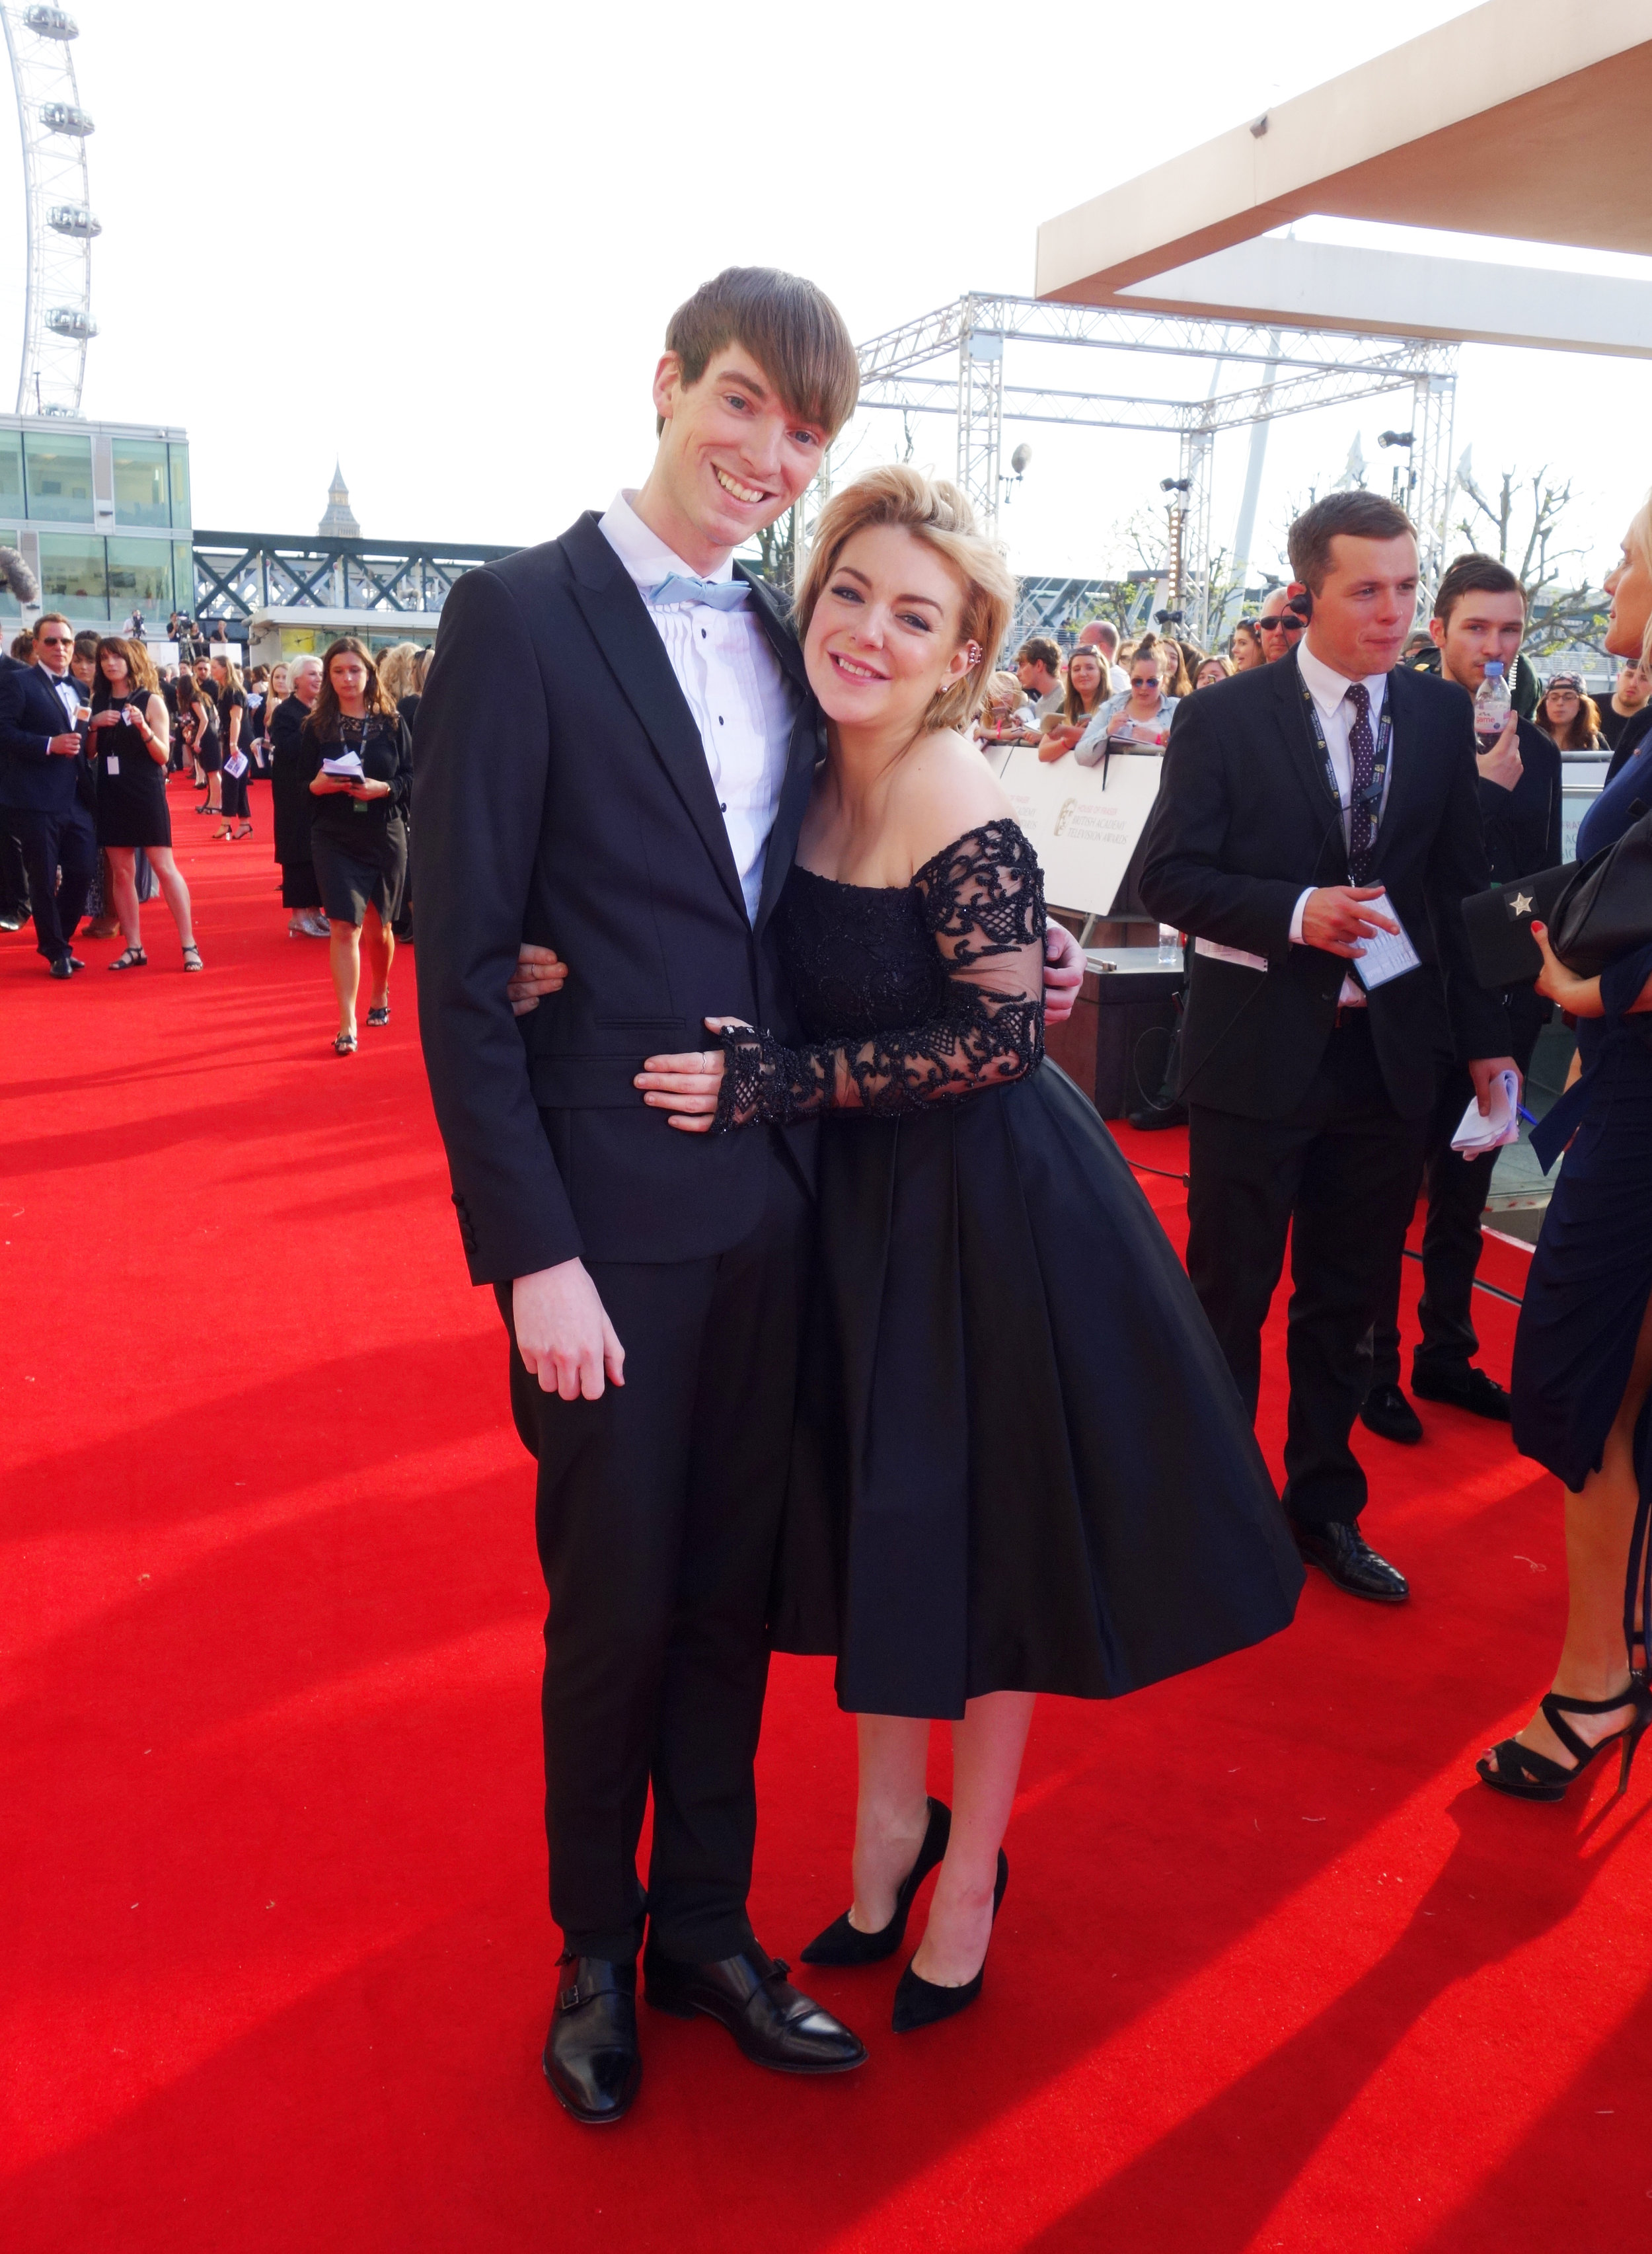 Richard Brownlie-Marshall & Sheridan Smith